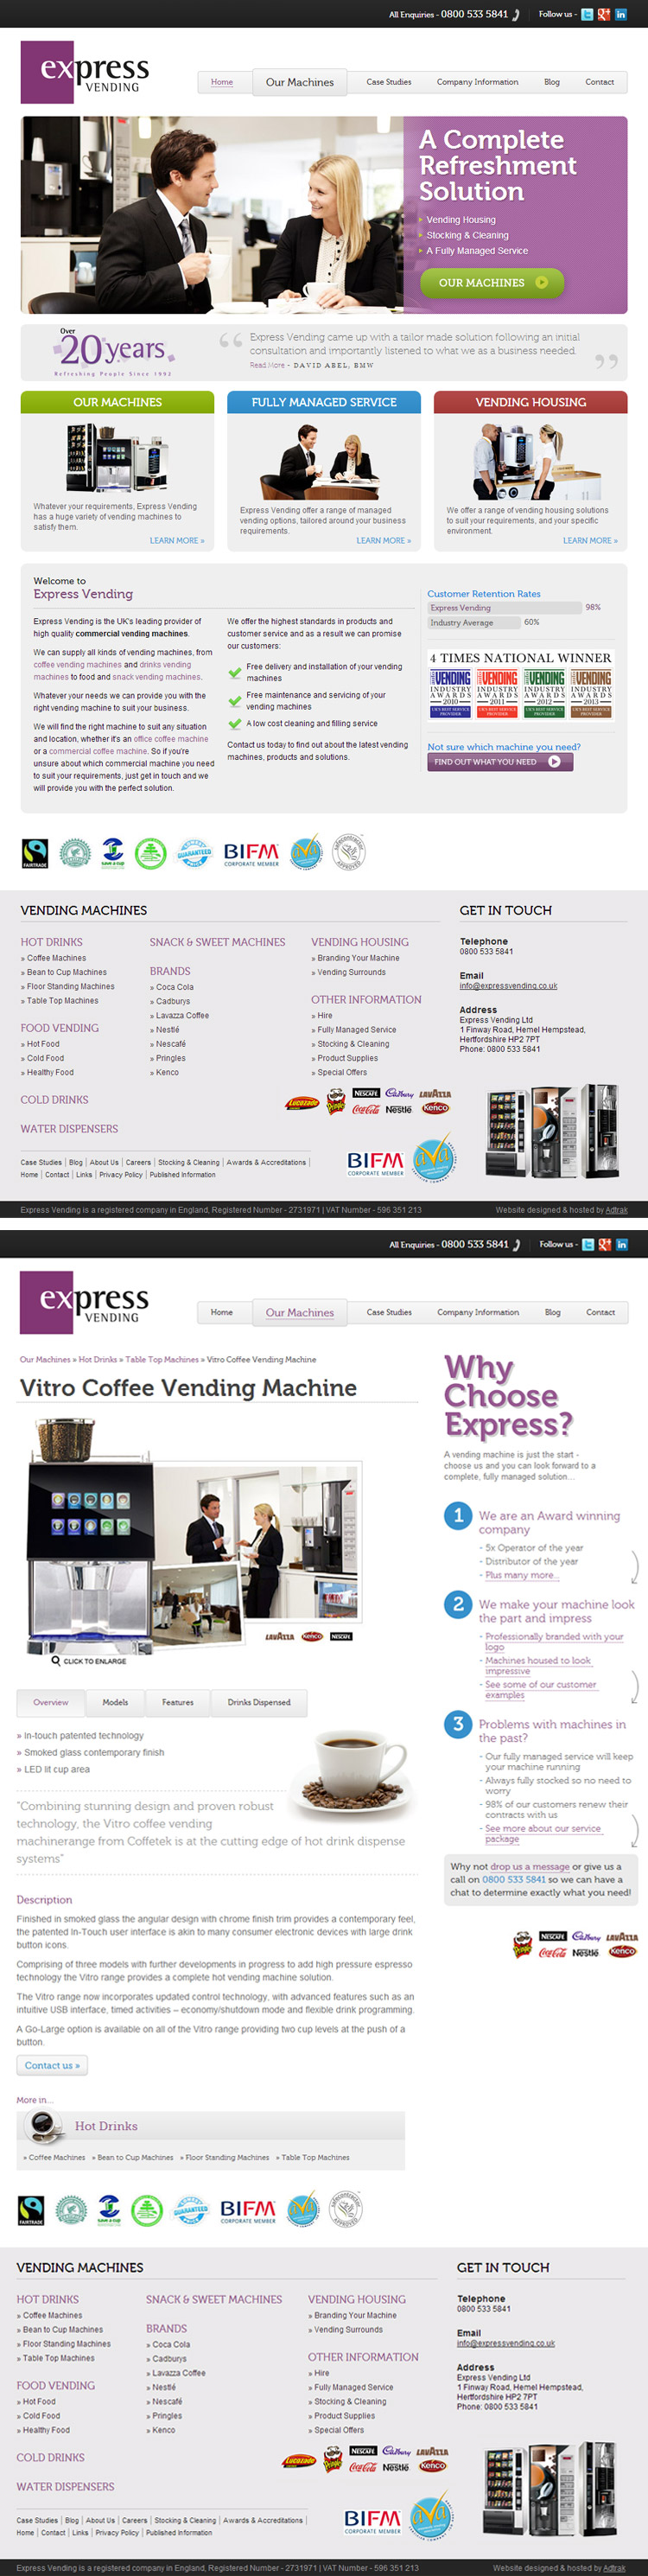 Express Vending Website